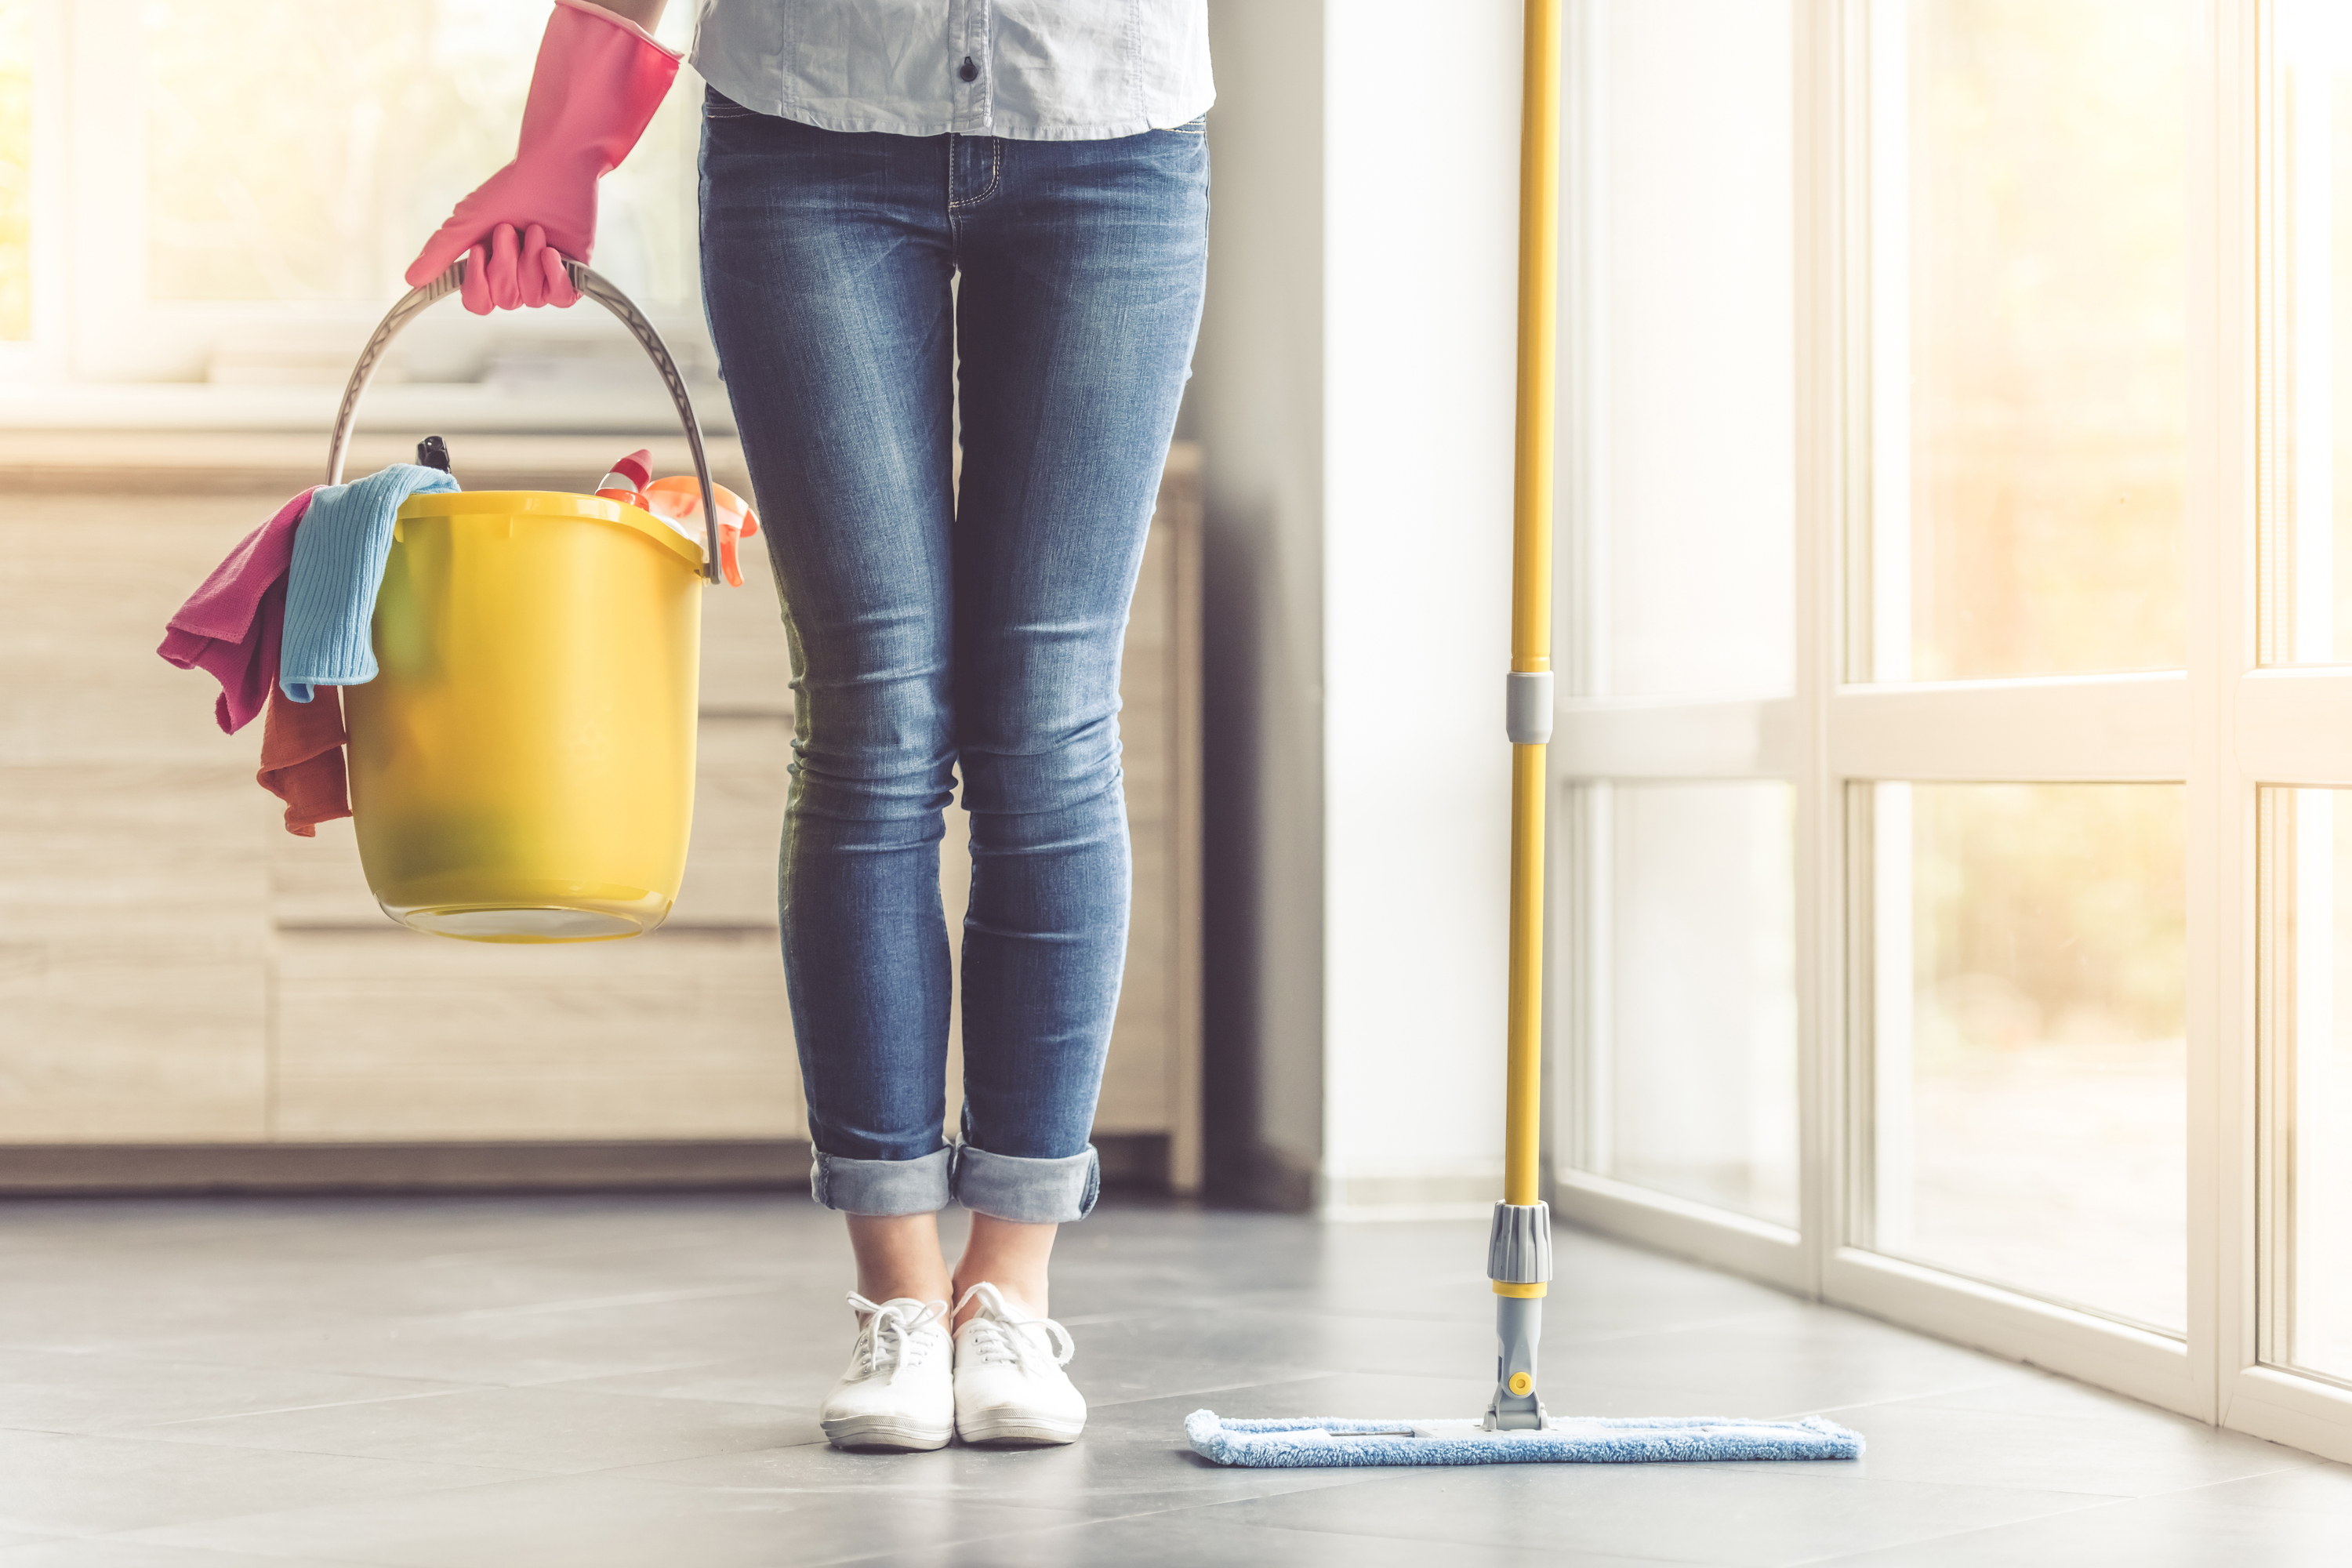 If you want to keep your home squeaky clean, you need to implement these cleaning habits to your life. You will see a huge difference in your life with these cleaning habits.